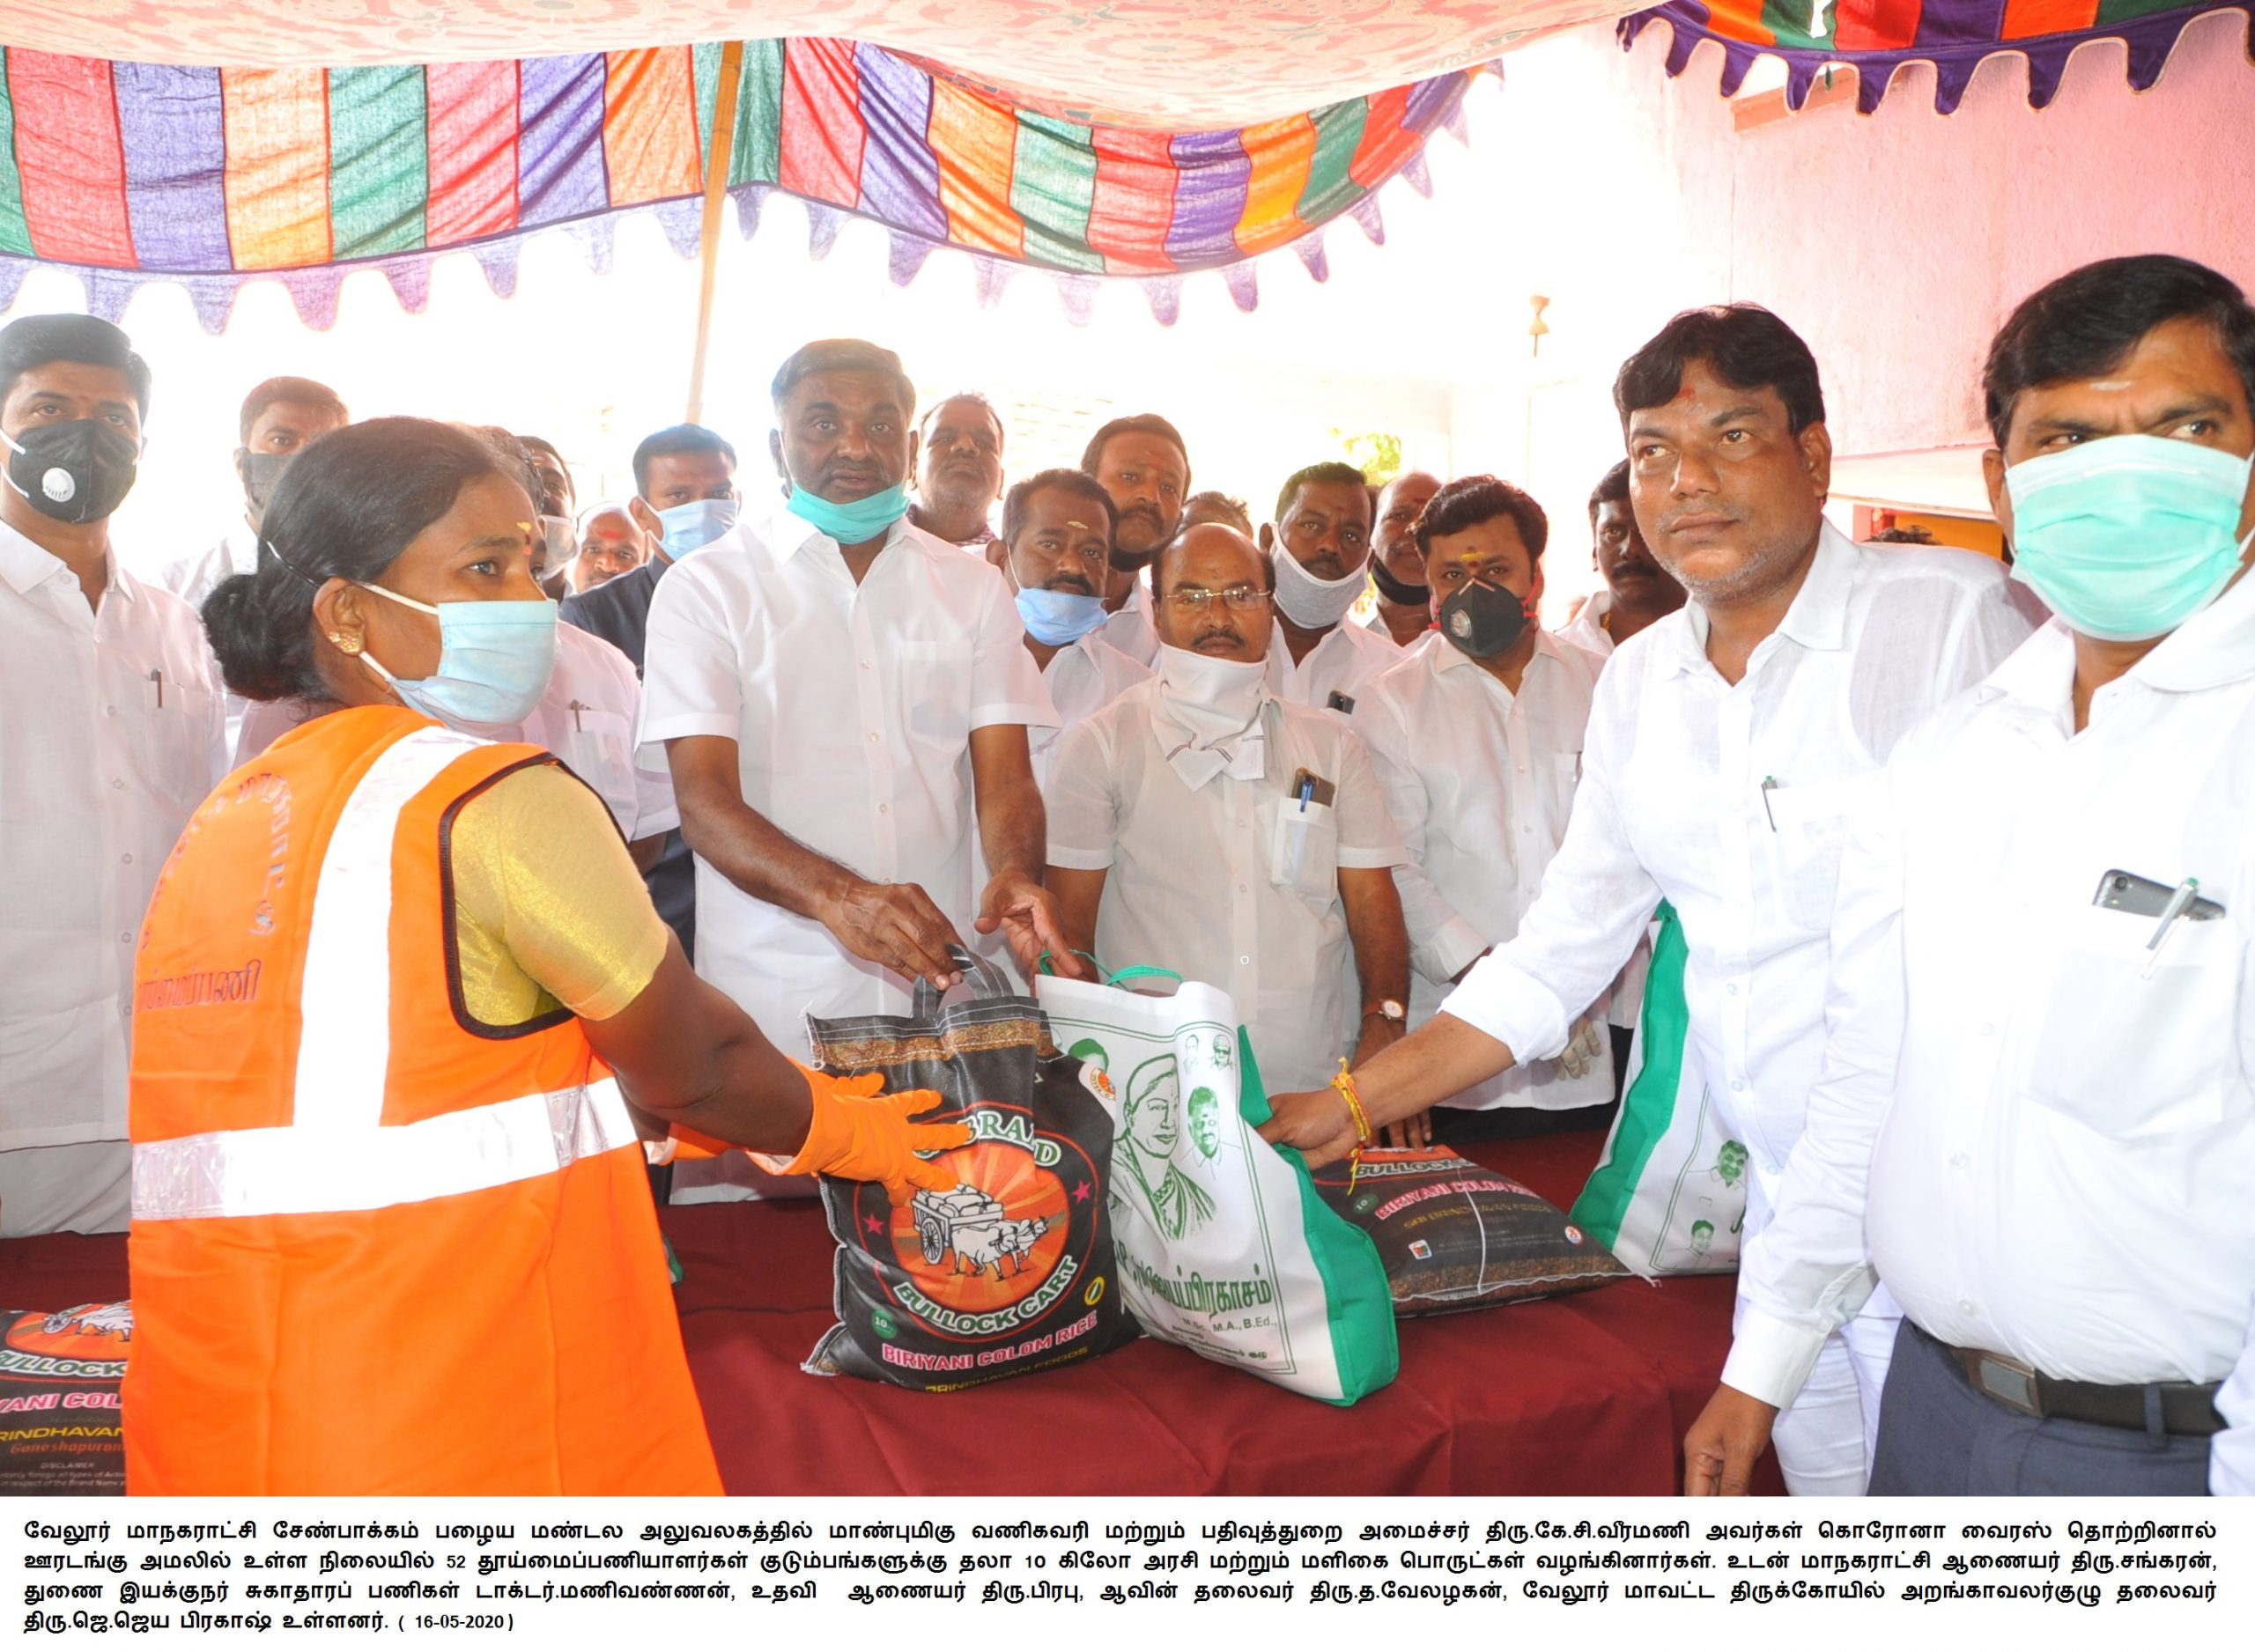 Honorable Commercial Tax and Registration Department Minister K.C.Veeramani Donated corona Relief Materials 16-05-2020